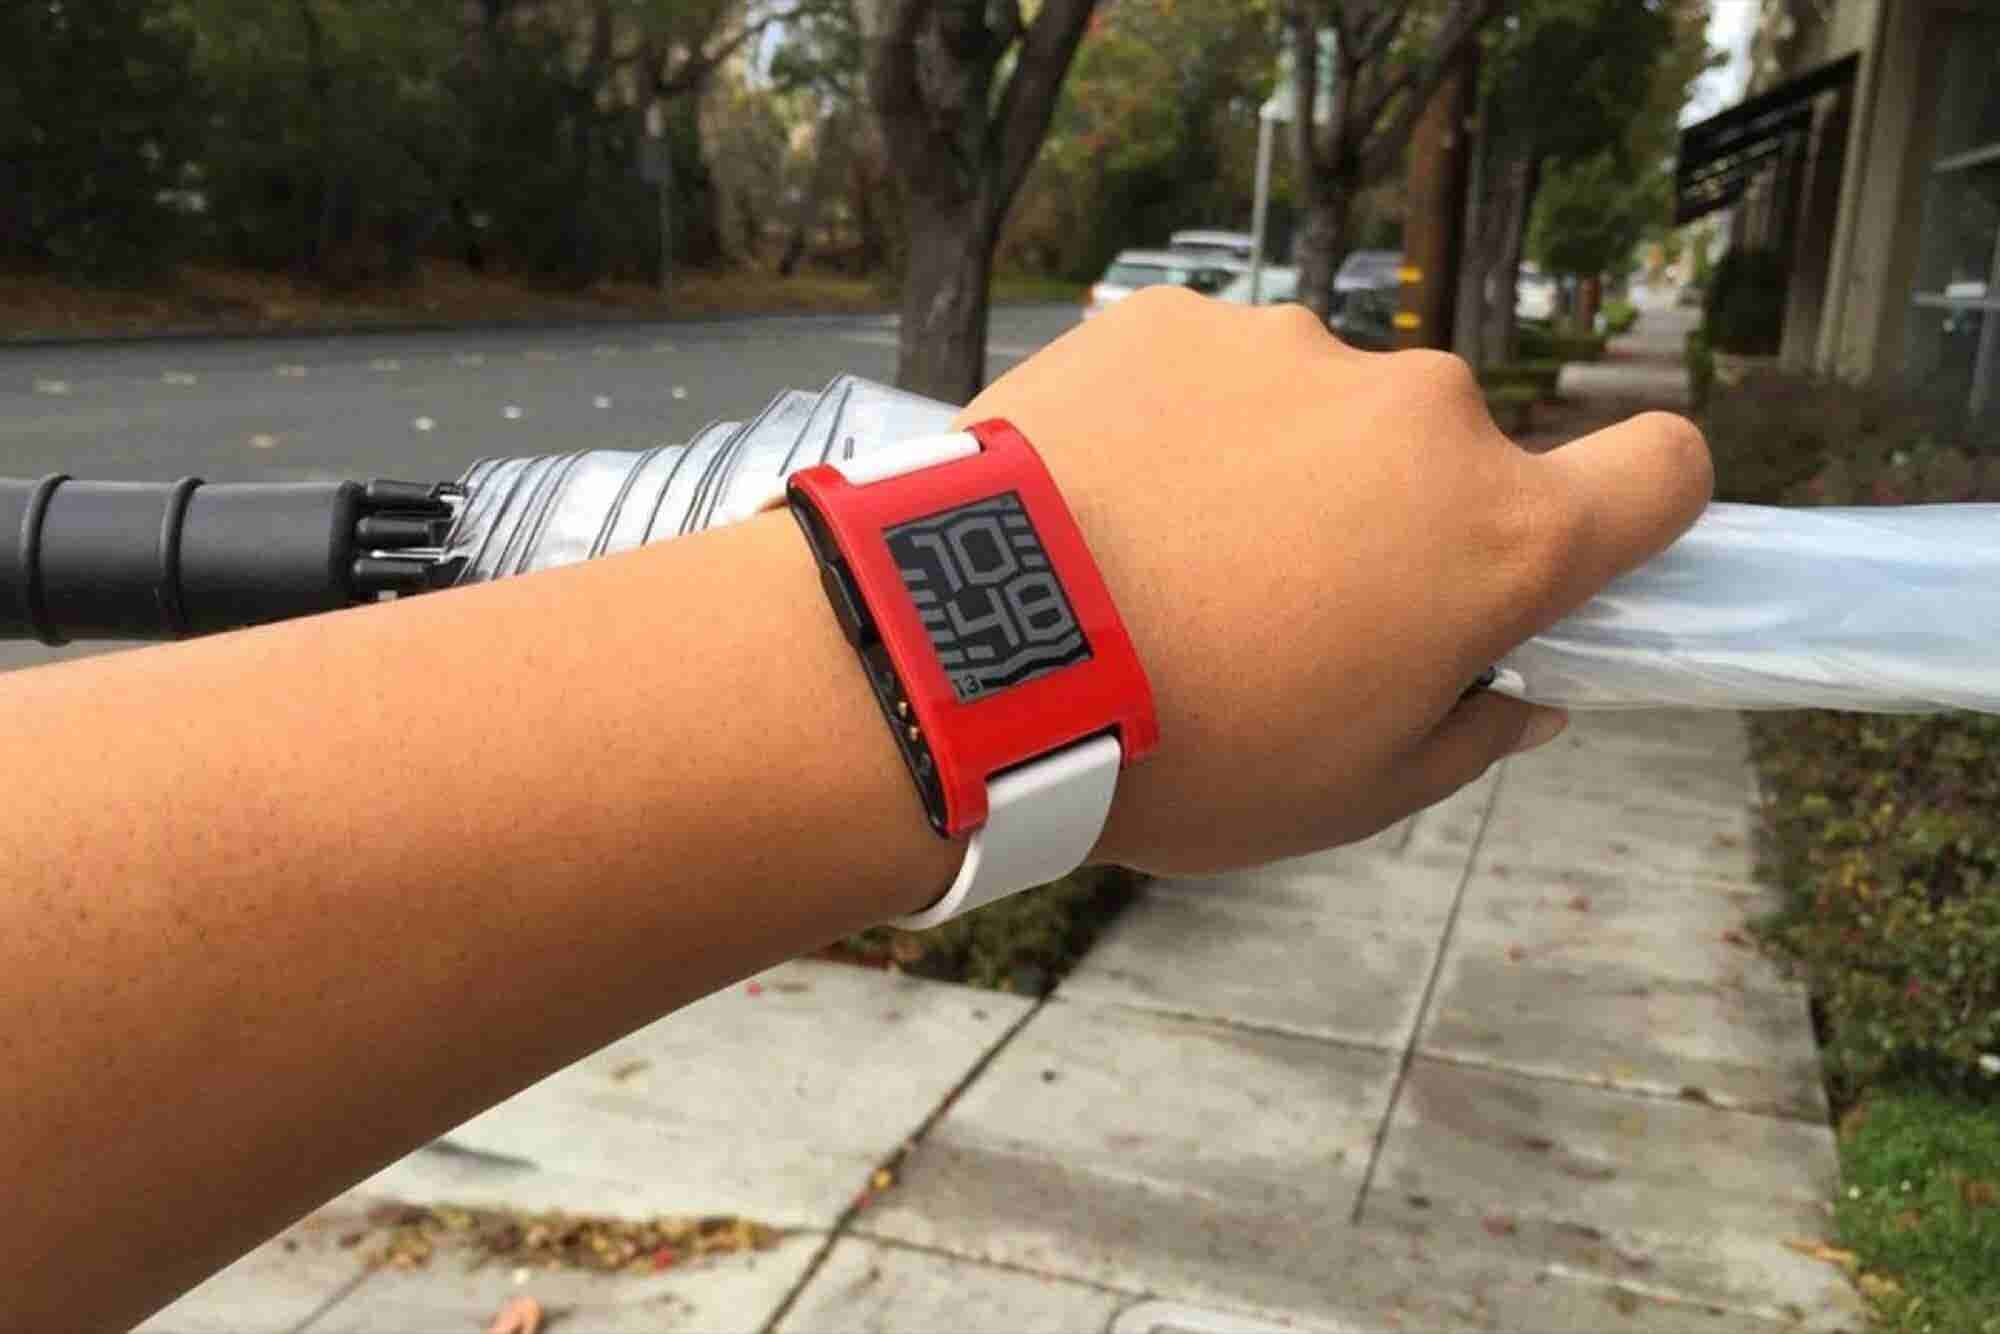 Pebble Gets Even Smarter, Rolls Out Interactive Notifications for Android Users